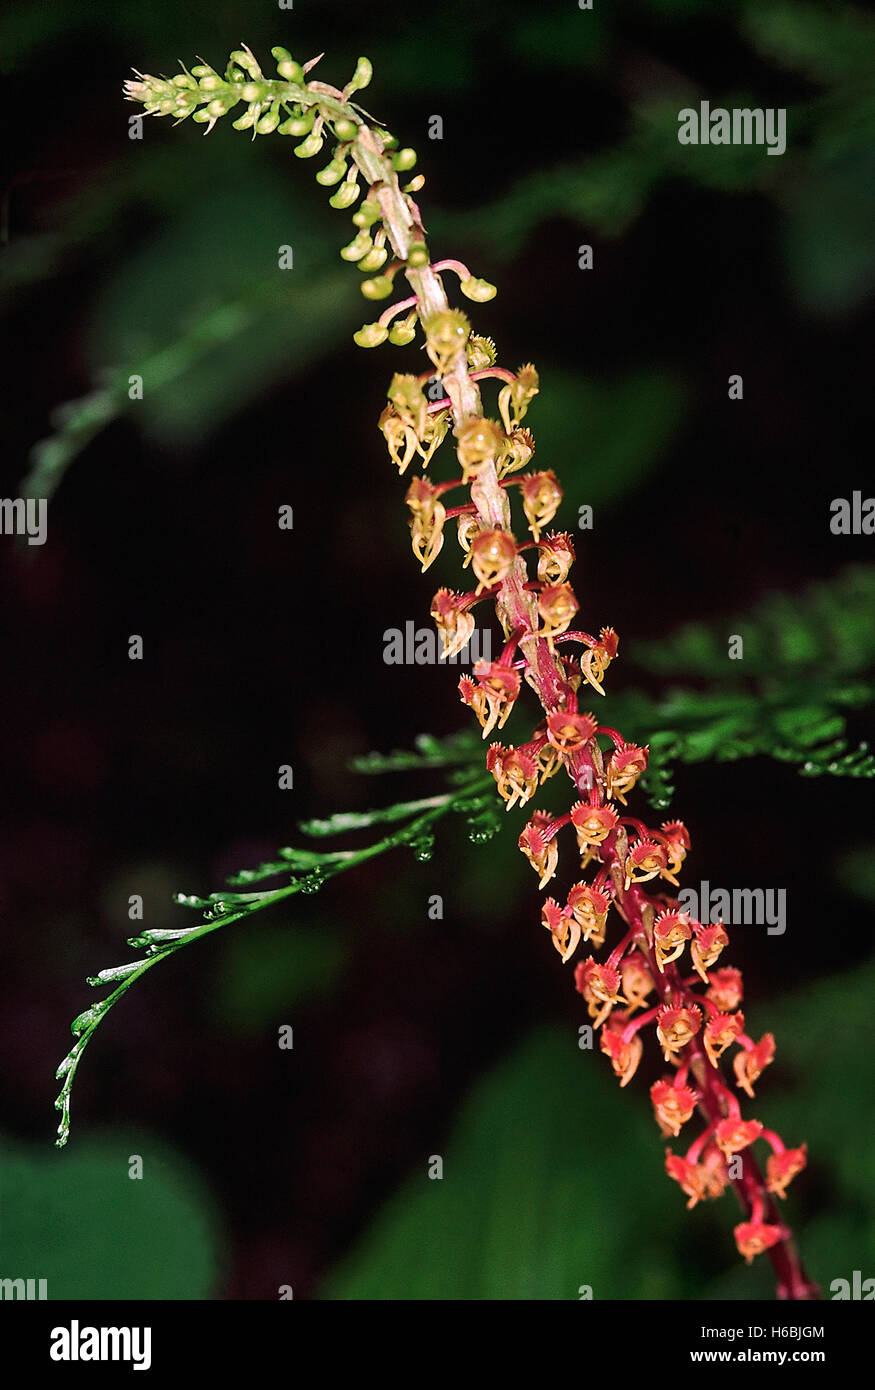 Malaxis Versicolour. Family: Orchidaceae. An interesting ground orchid found growing on lateritic boulders and rocks - Stock Image